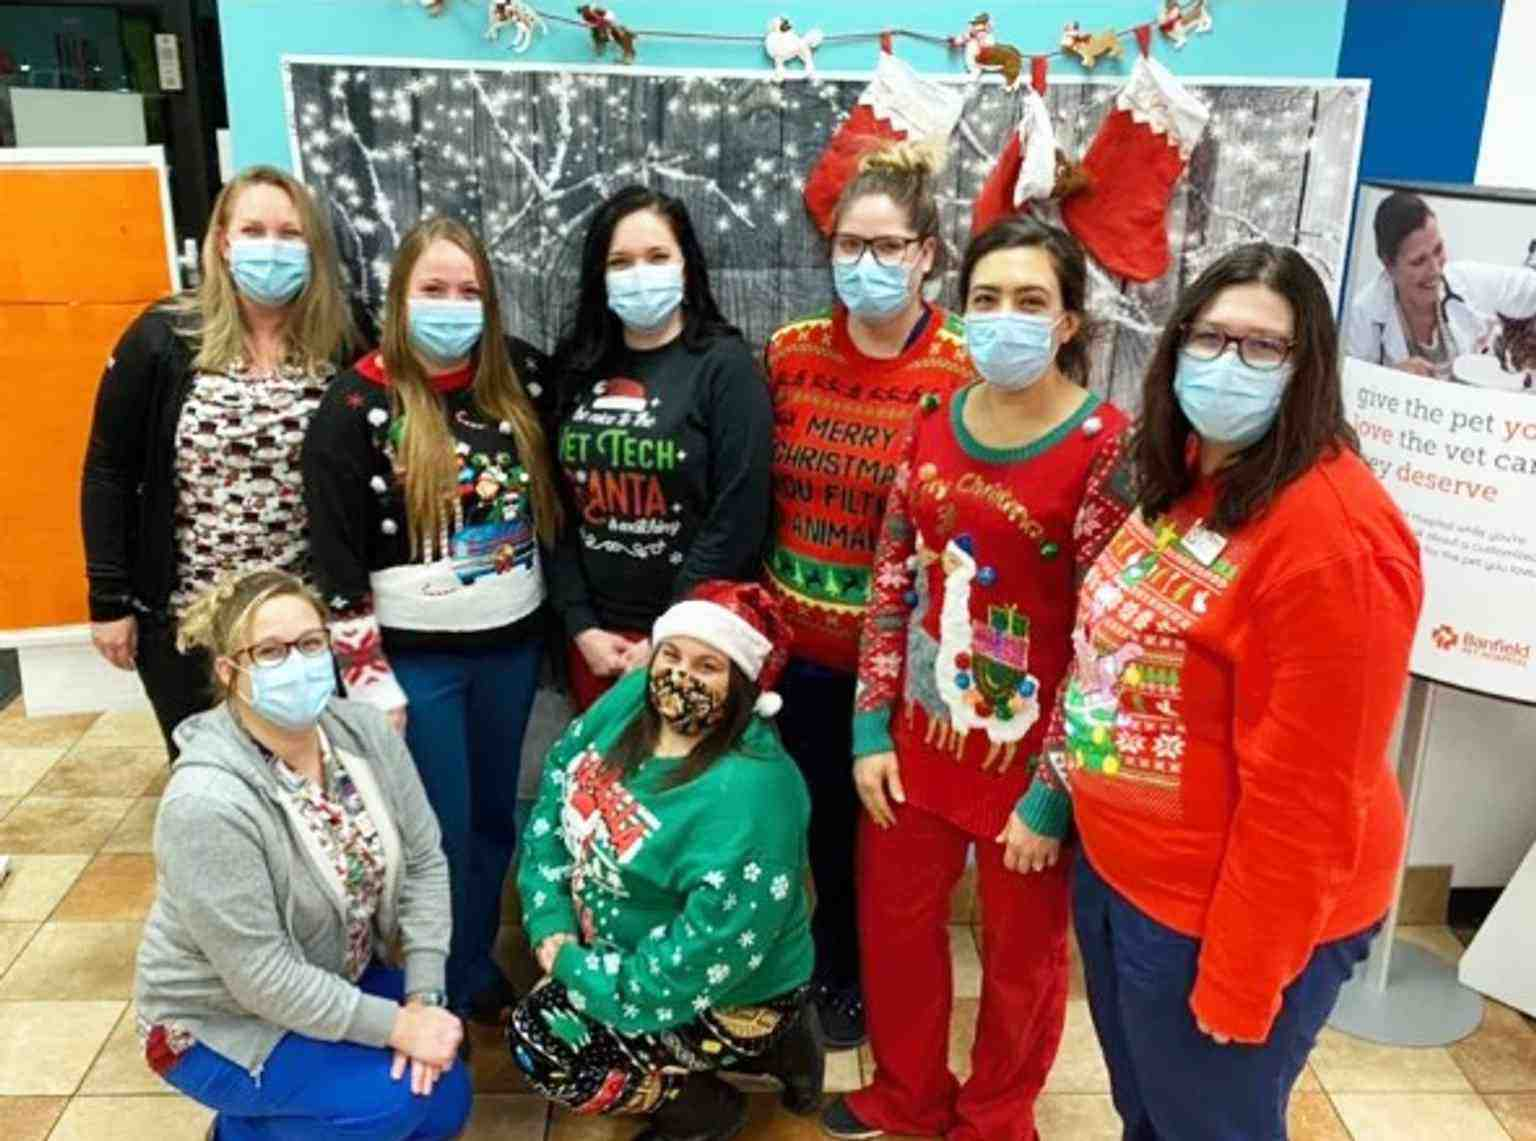 A group of Banfield Associates celebrating Christmas at the Banfield Pet Hospital